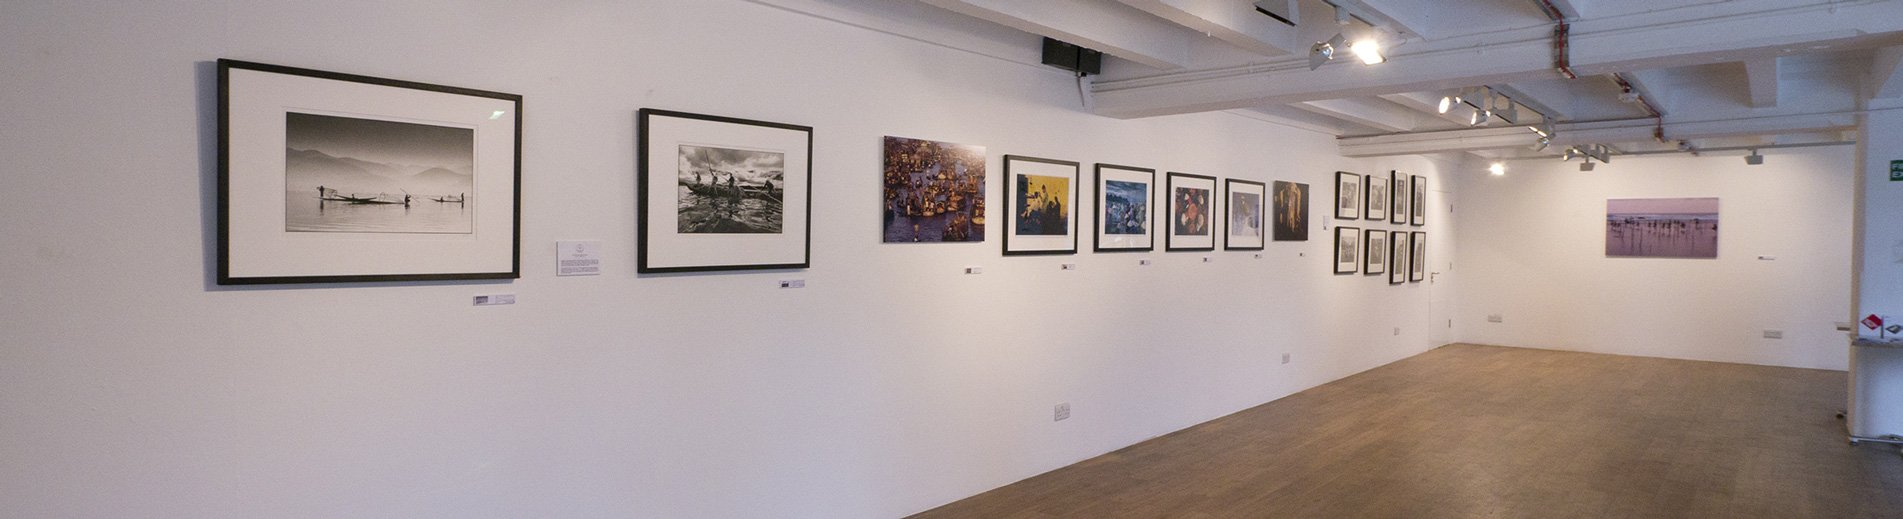 Hans' images on display in London - Fine Art Prints